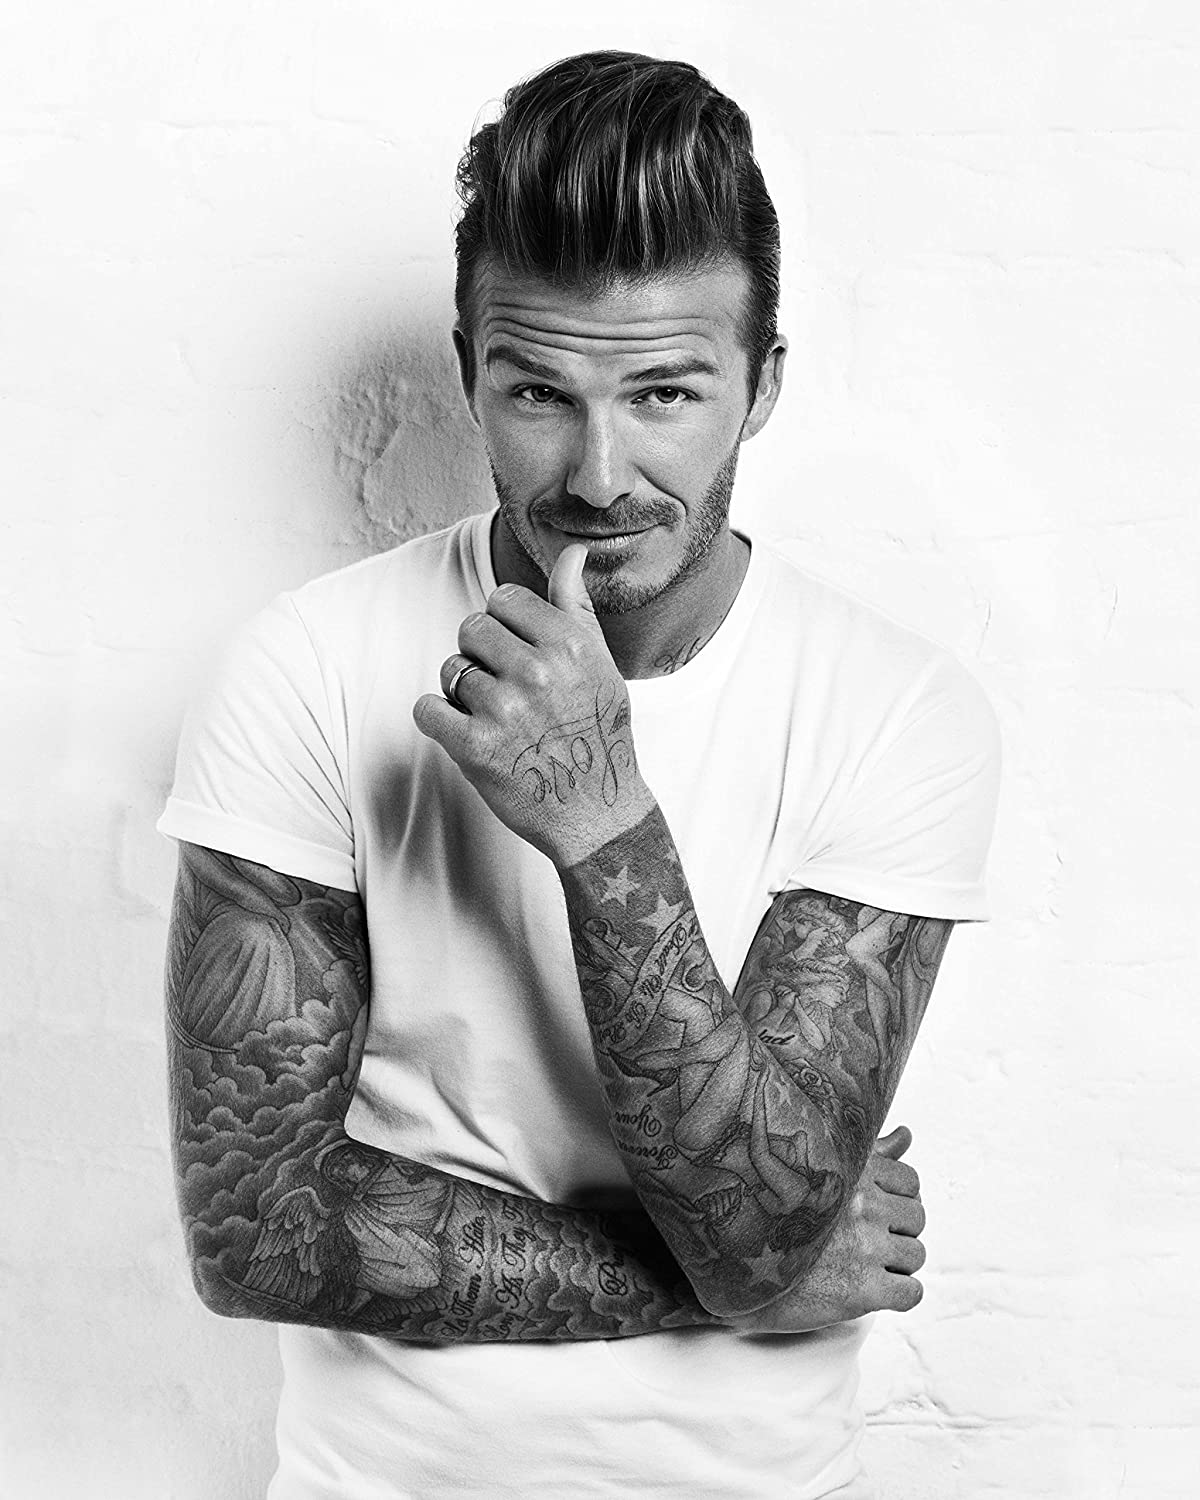 Amazon.com: David Beckham Poster Sexy Hot Guys Room Wall Art Decor High  Quality 16x20 Inches: Posters & Prints